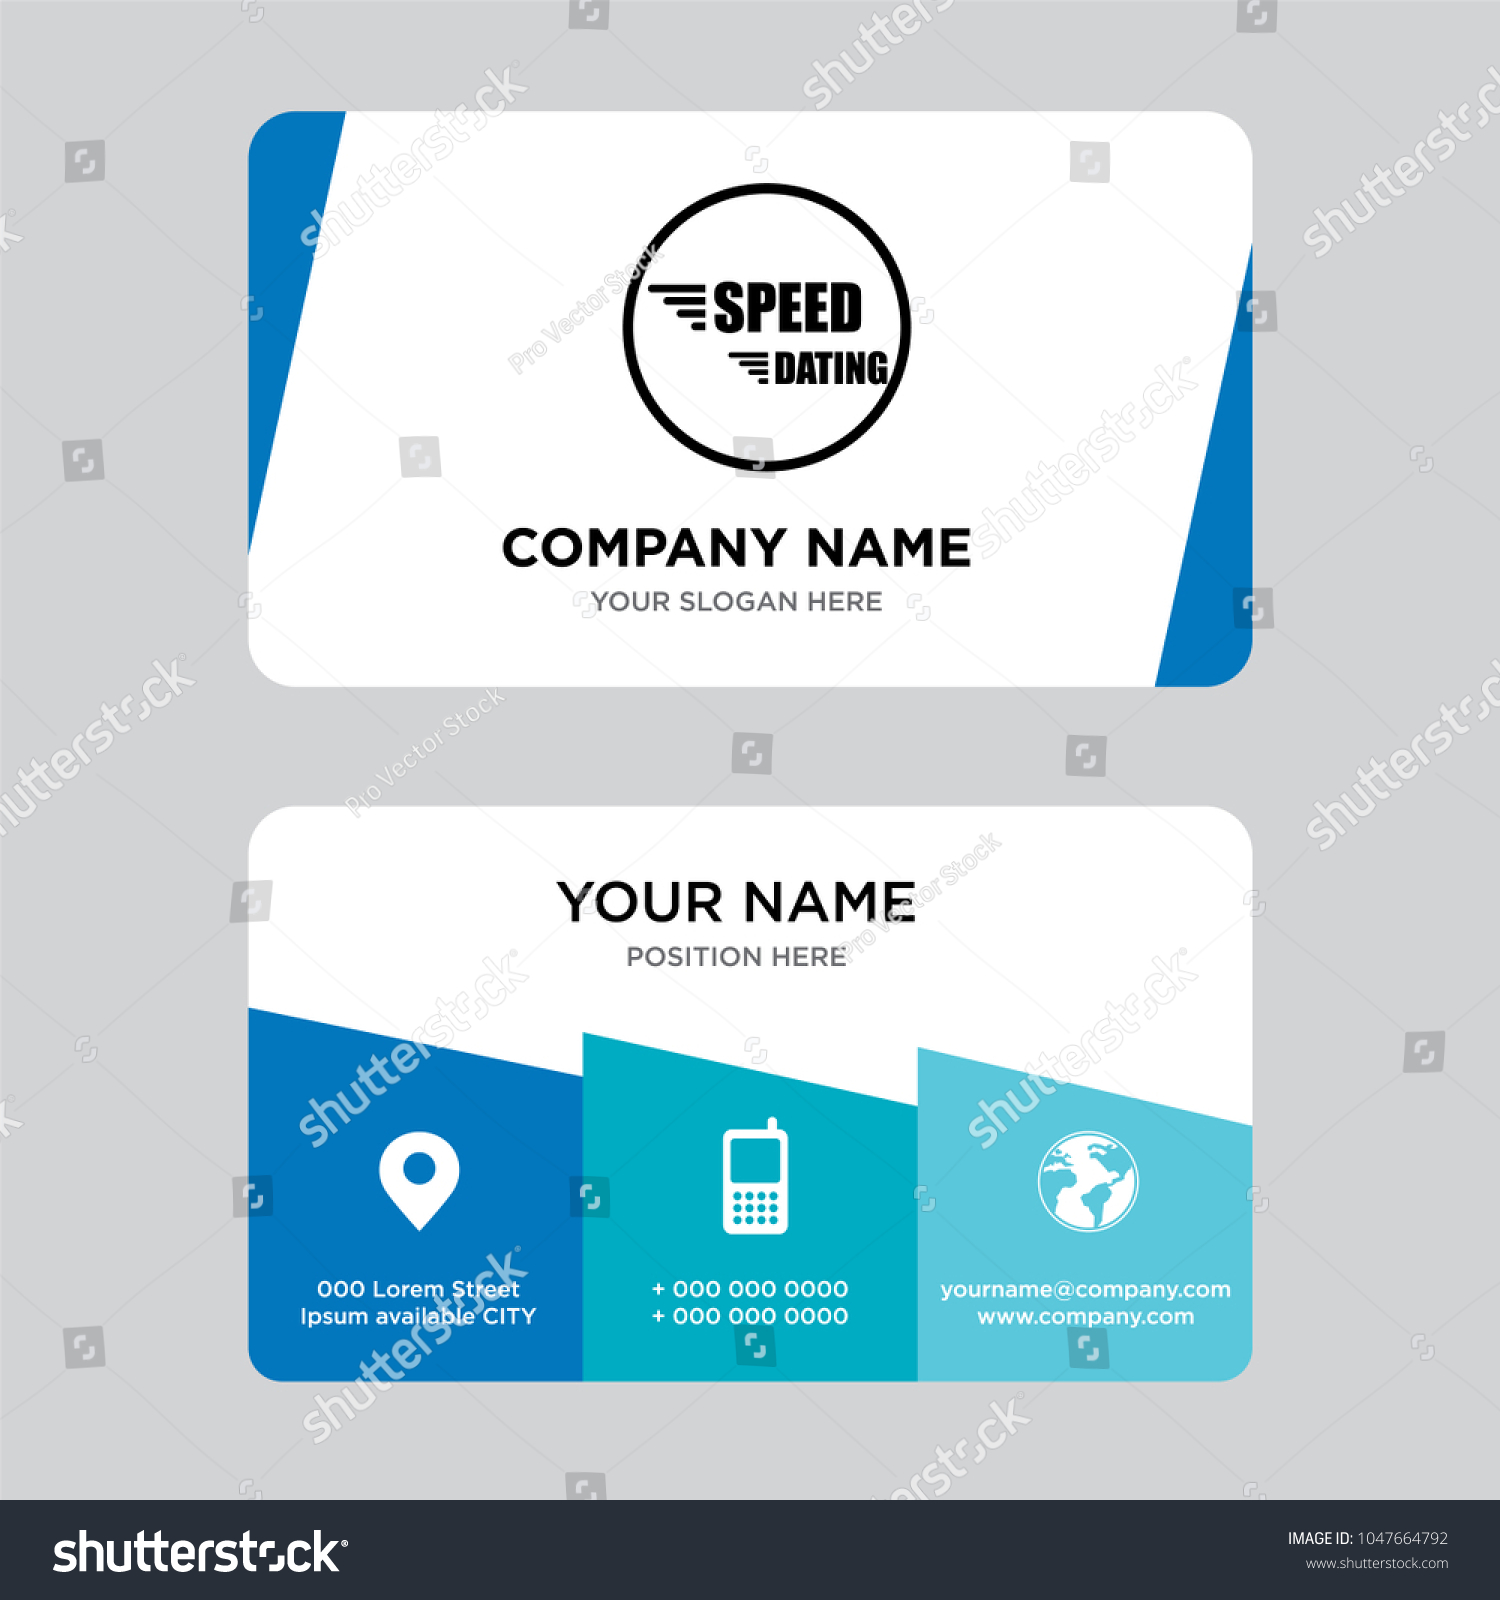 Speed dating business card design template stock vector 1047664792 speed dating business card design template visiting for your company modern creative and clean colourmoves